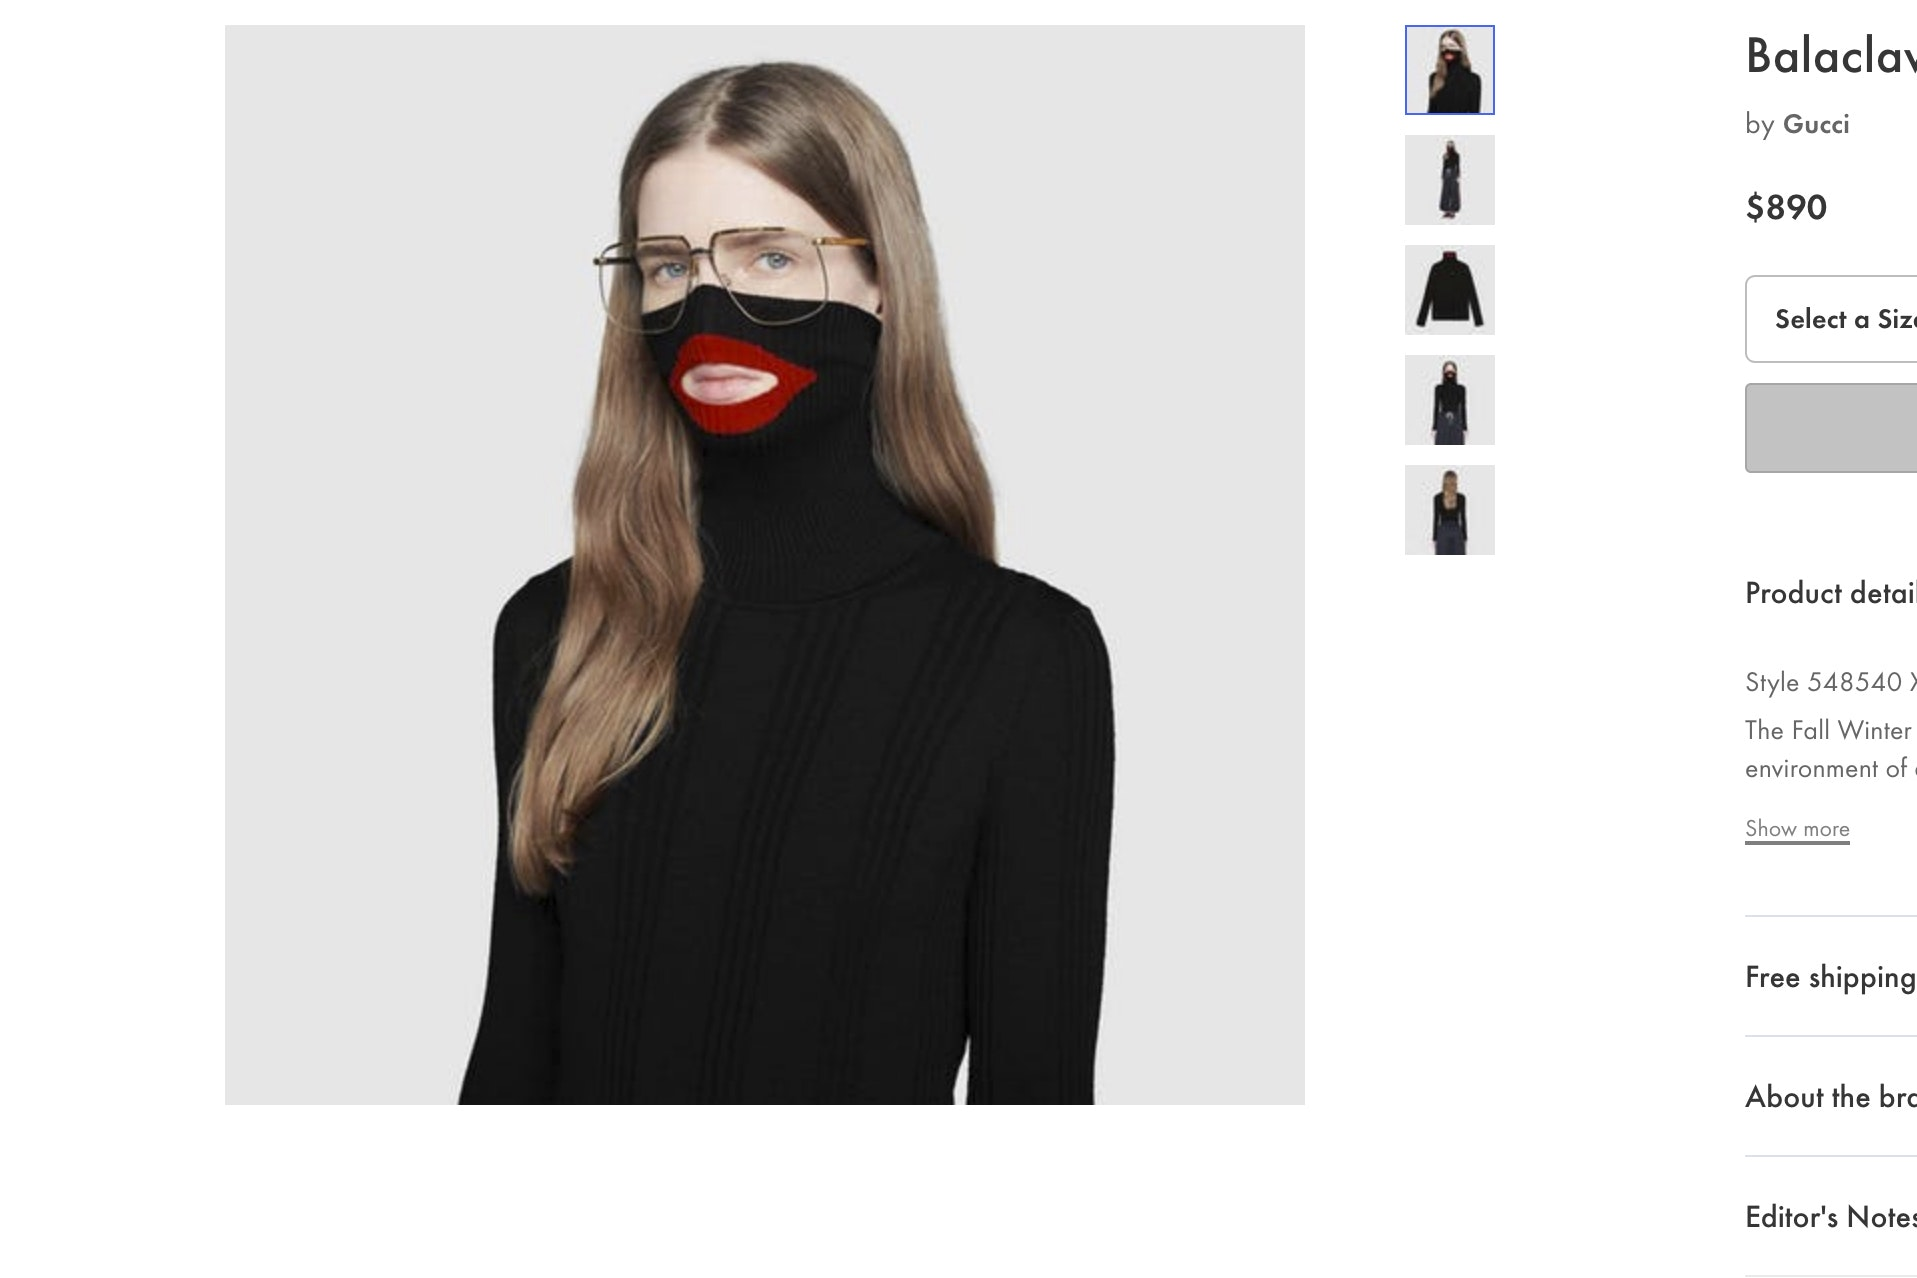 Gucci removes 'blackface' sweater from stores after complaints